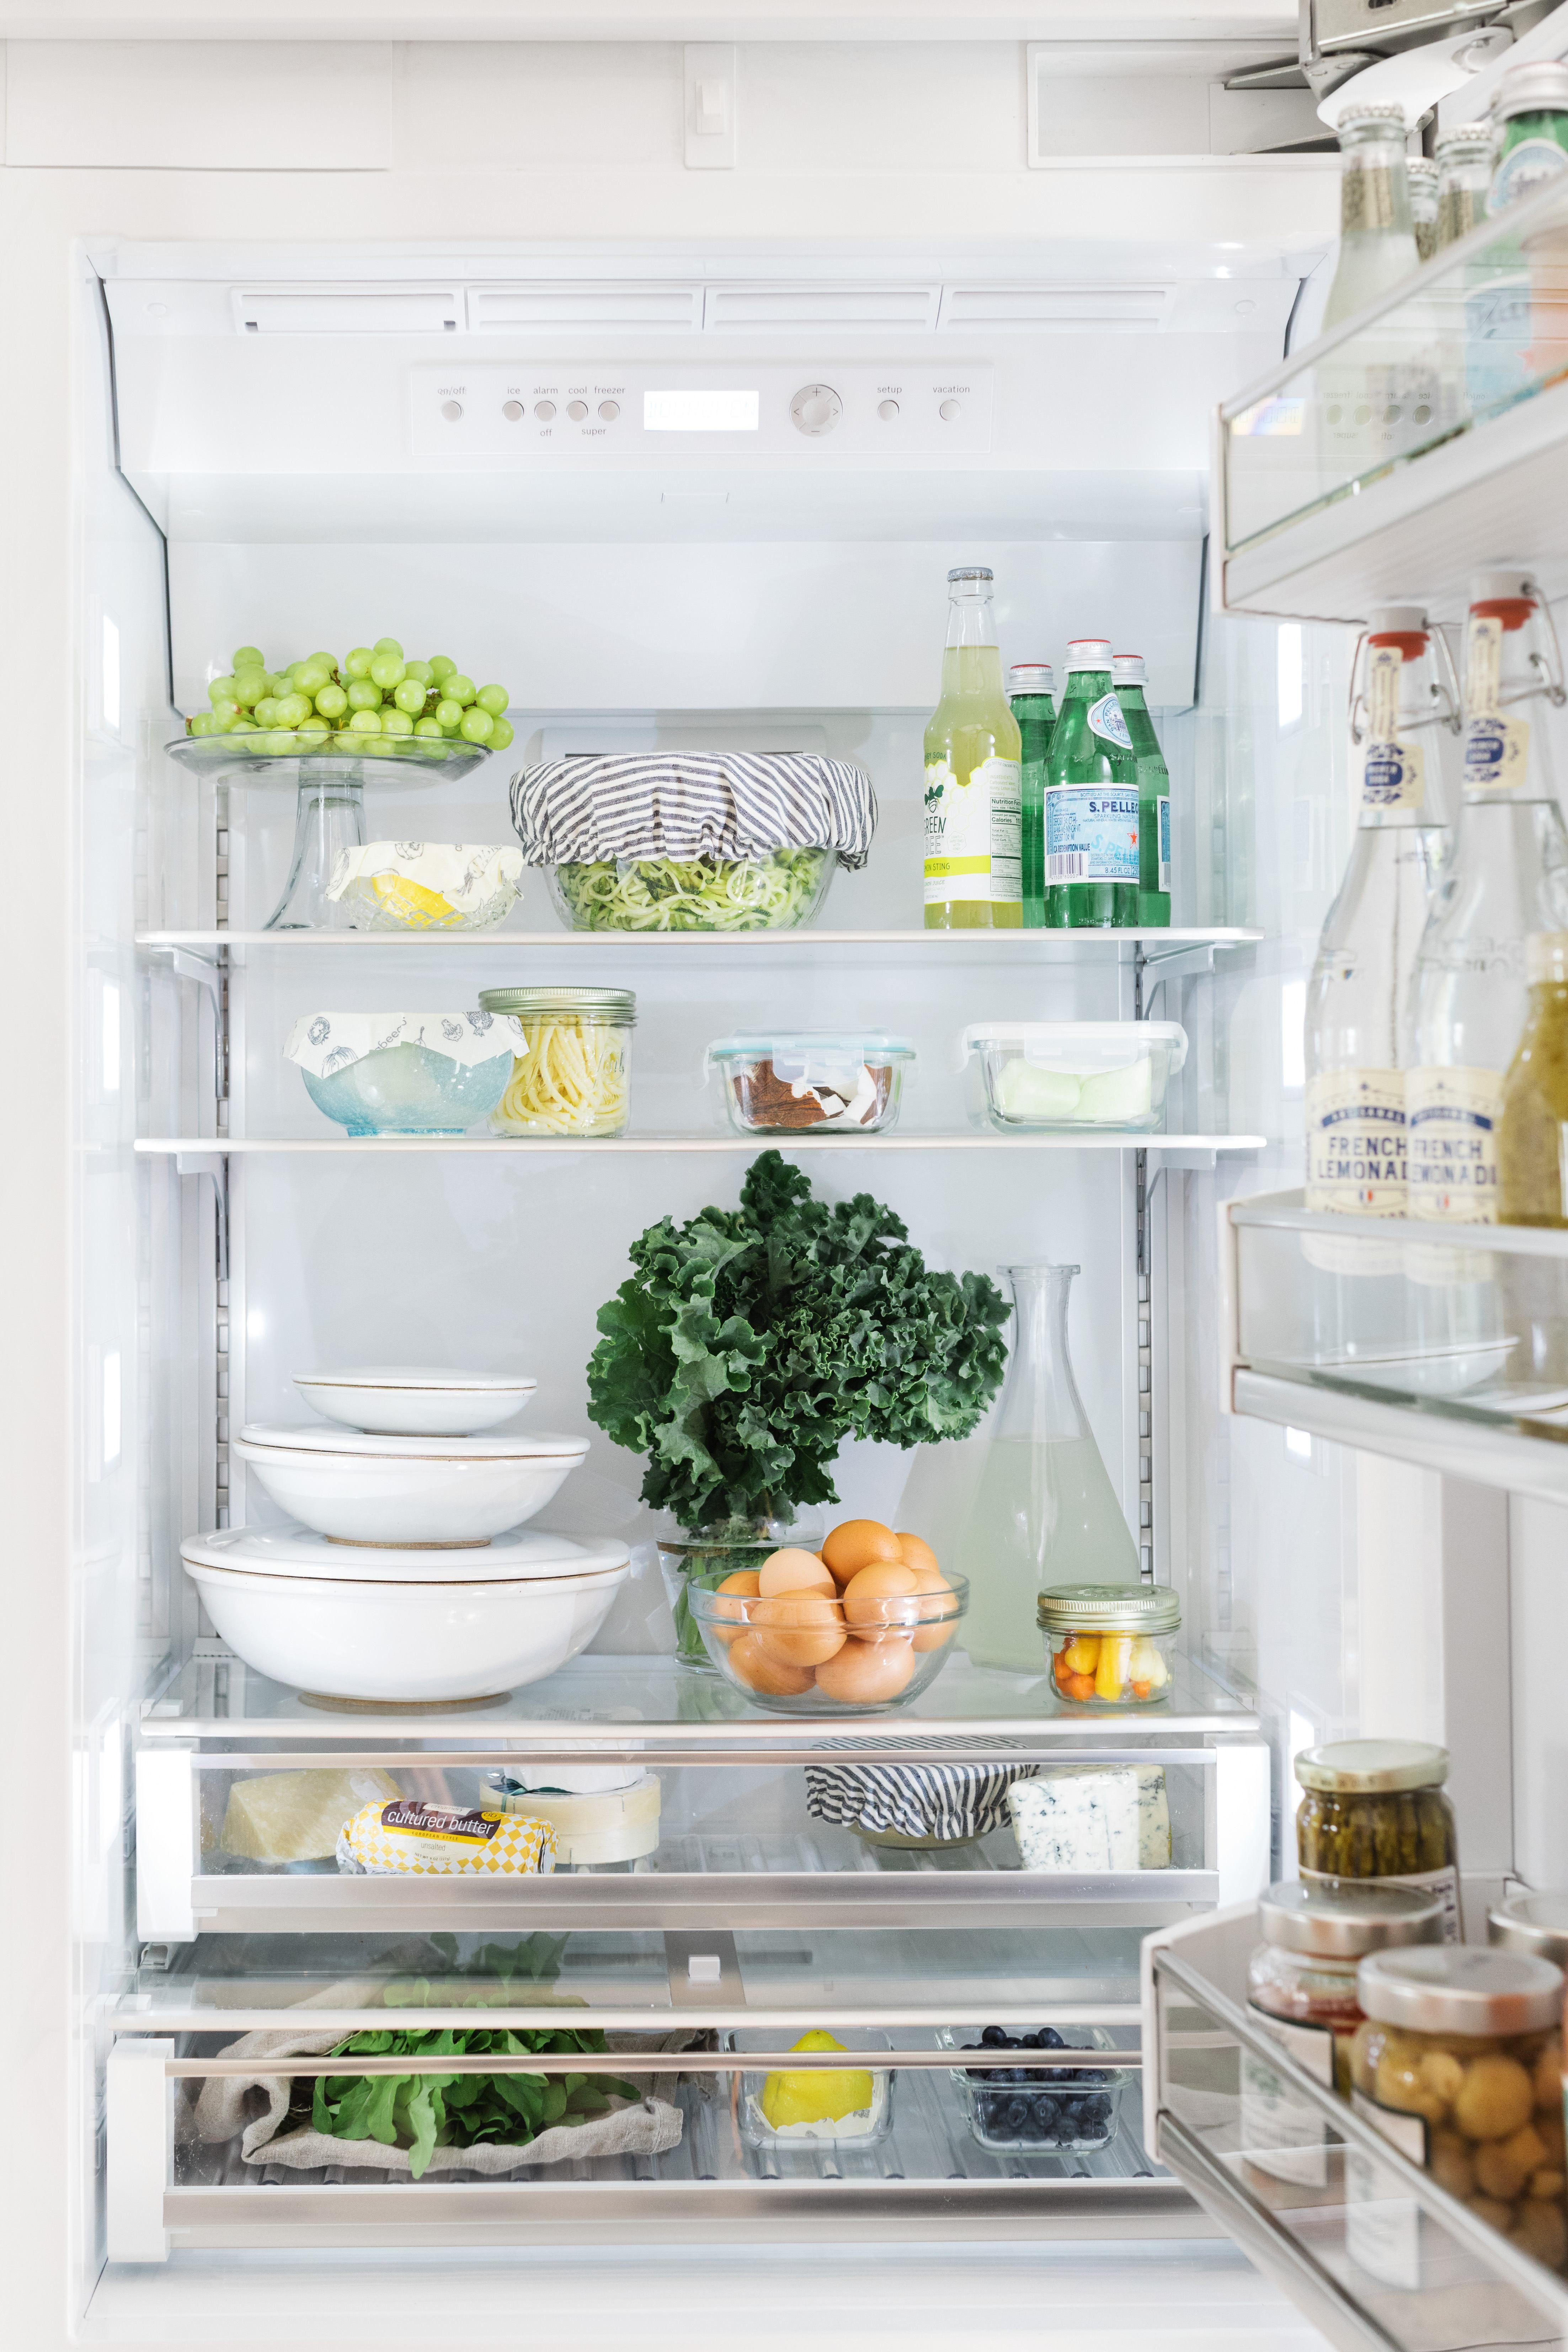 The Well-Organized Refrigerator with Bosch Home Appliances | Pretty ...